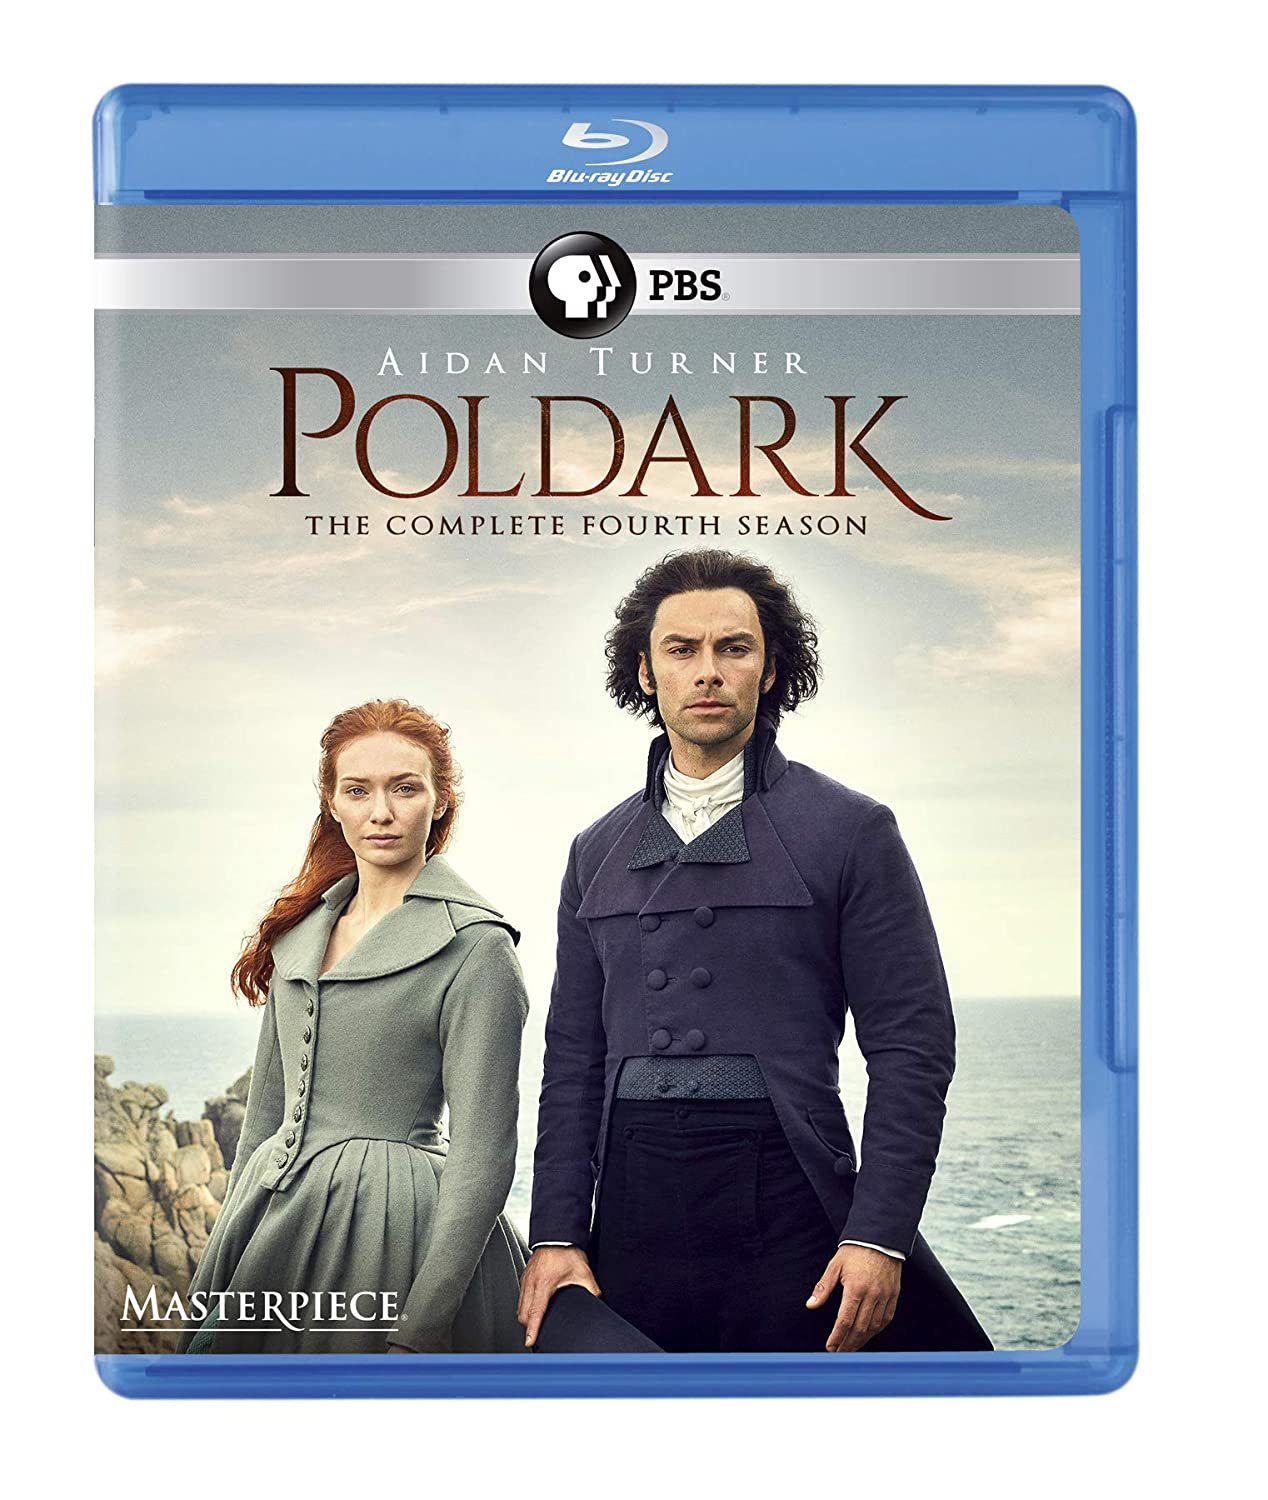 Poldark: The Complete Fourth Season (Masterpiece) [Blu-ray] [Import]